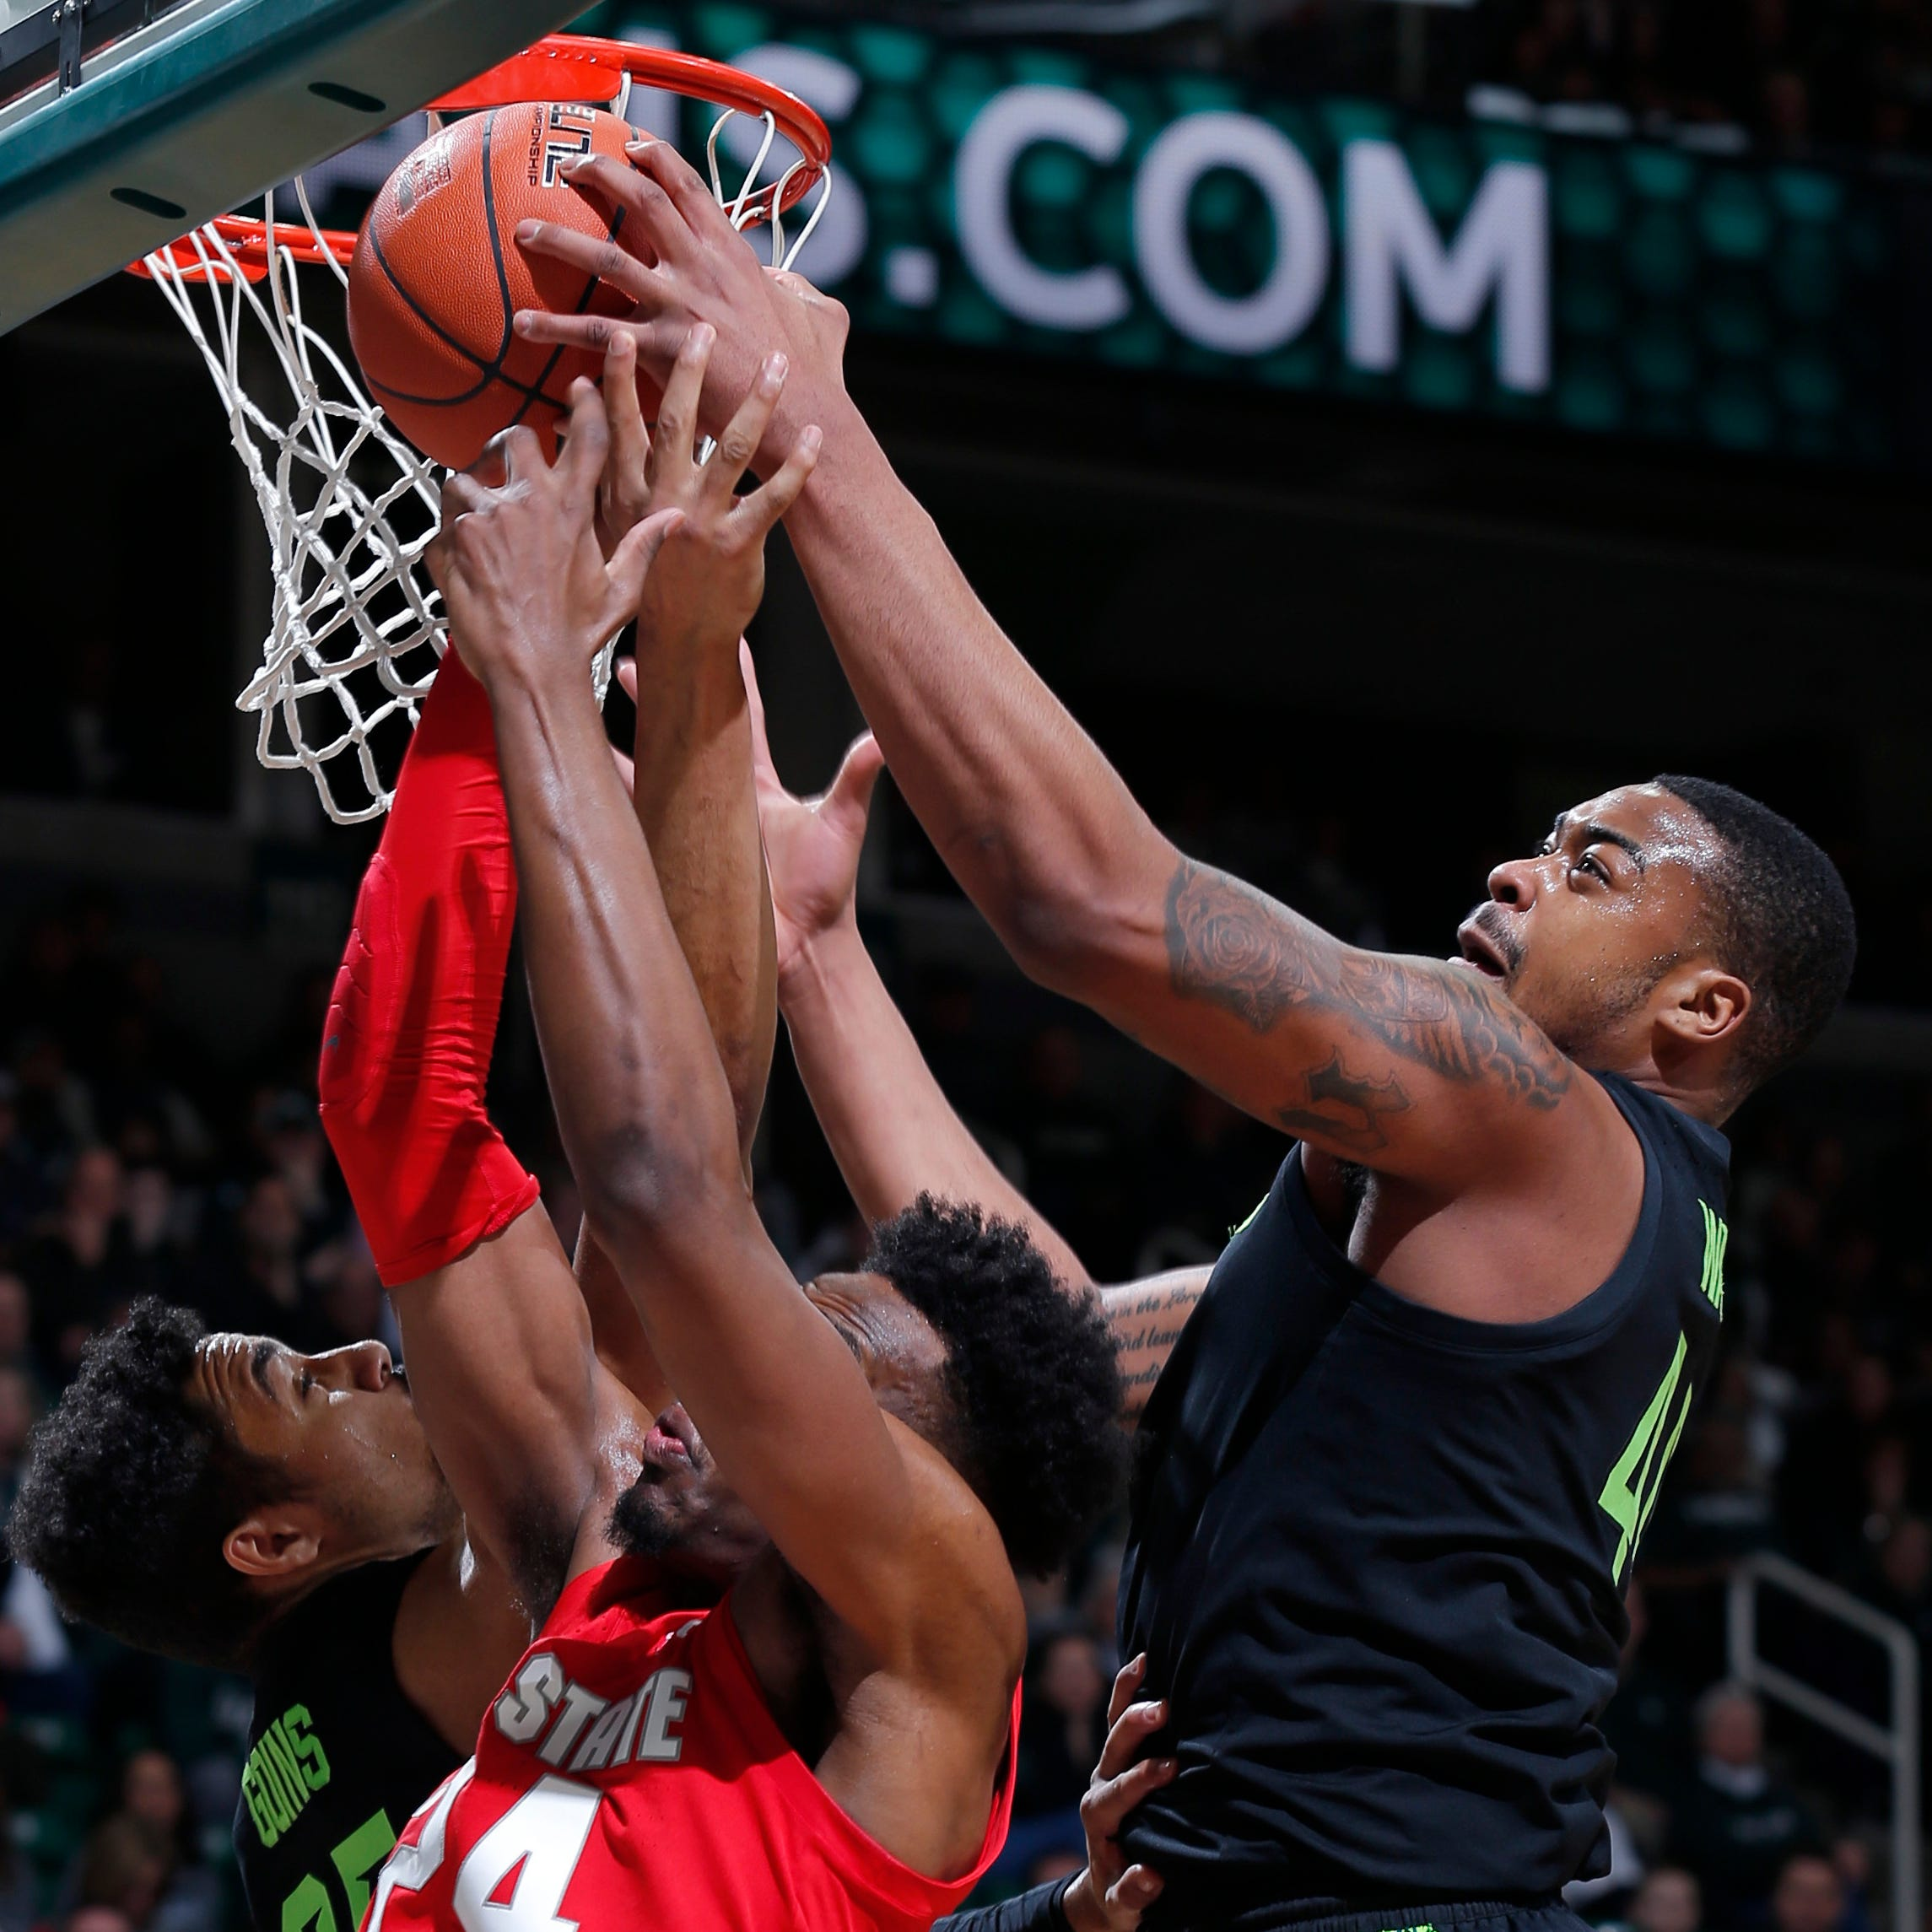 Couch: 3 quick takes on Michigan State basketball's second-half rally and win over Ohio State